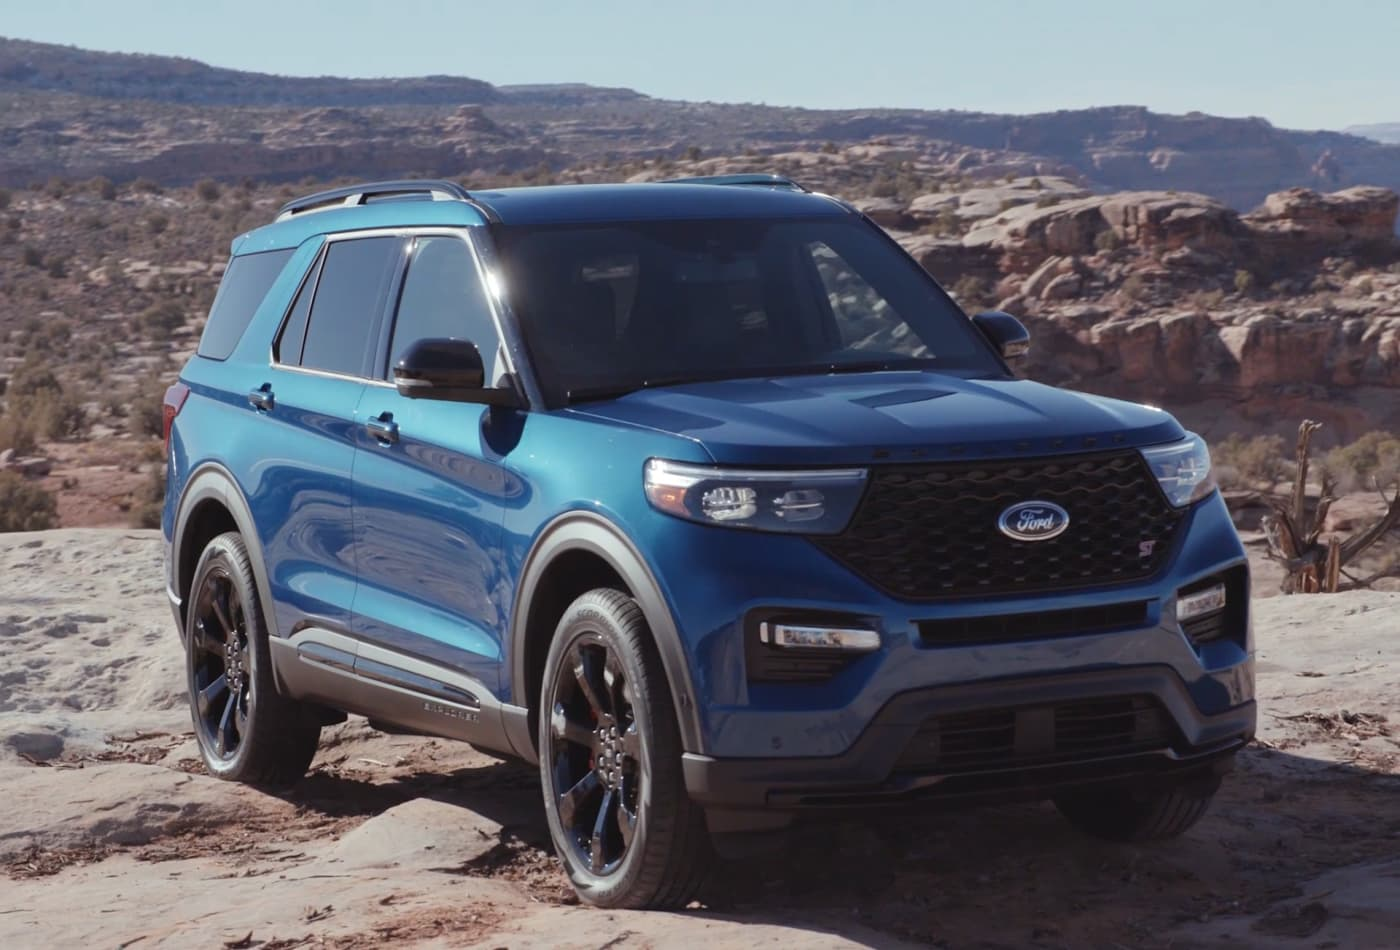 Why the Ford Explorer is losing its top spot in midsize SUVs